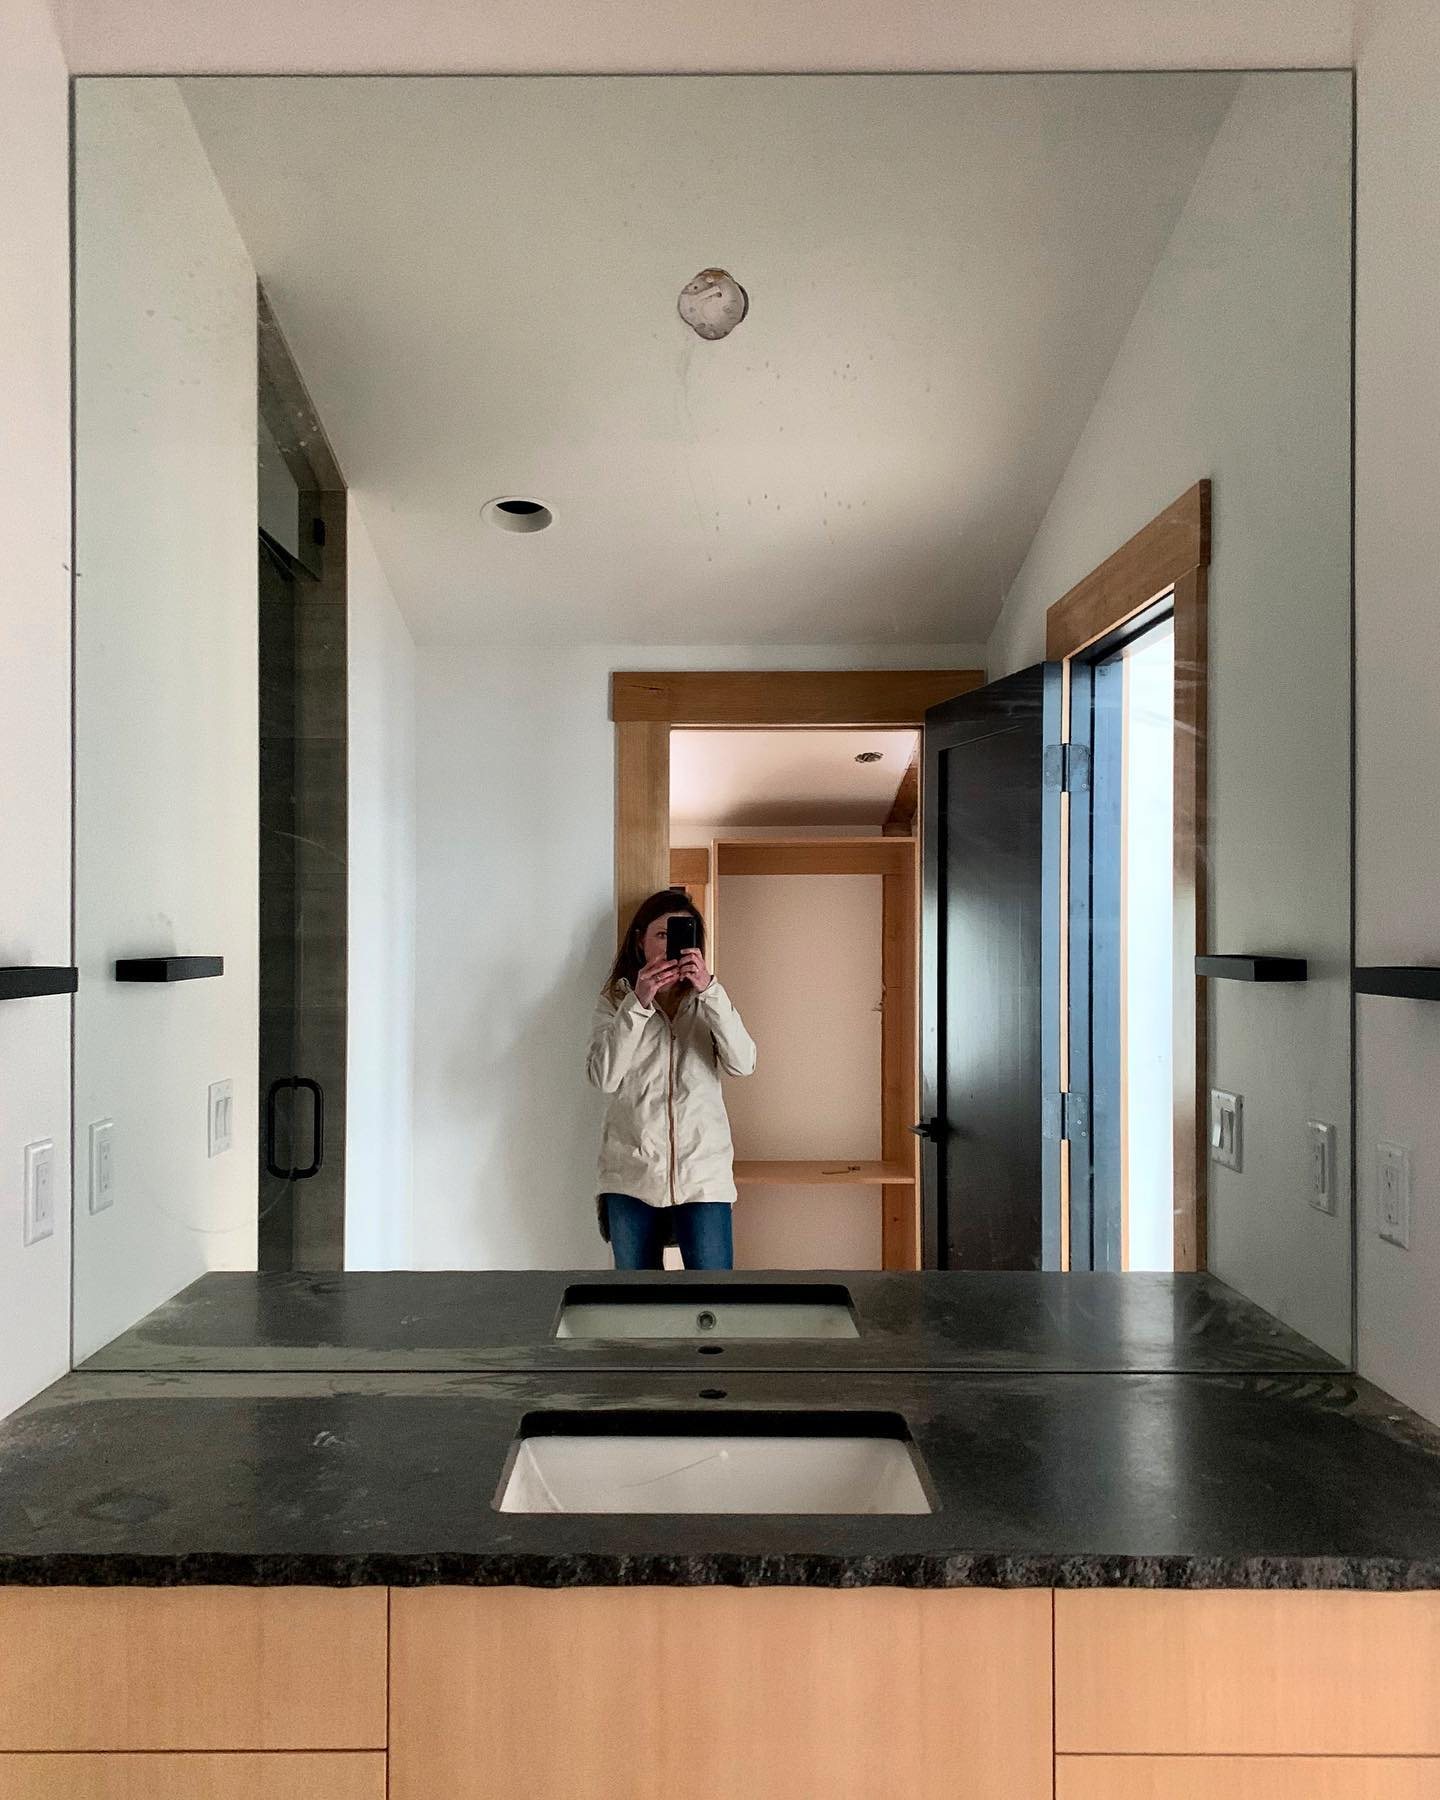 Another project coming together...just got this massive mirror up, now we can add the light! whitefish custom home builder